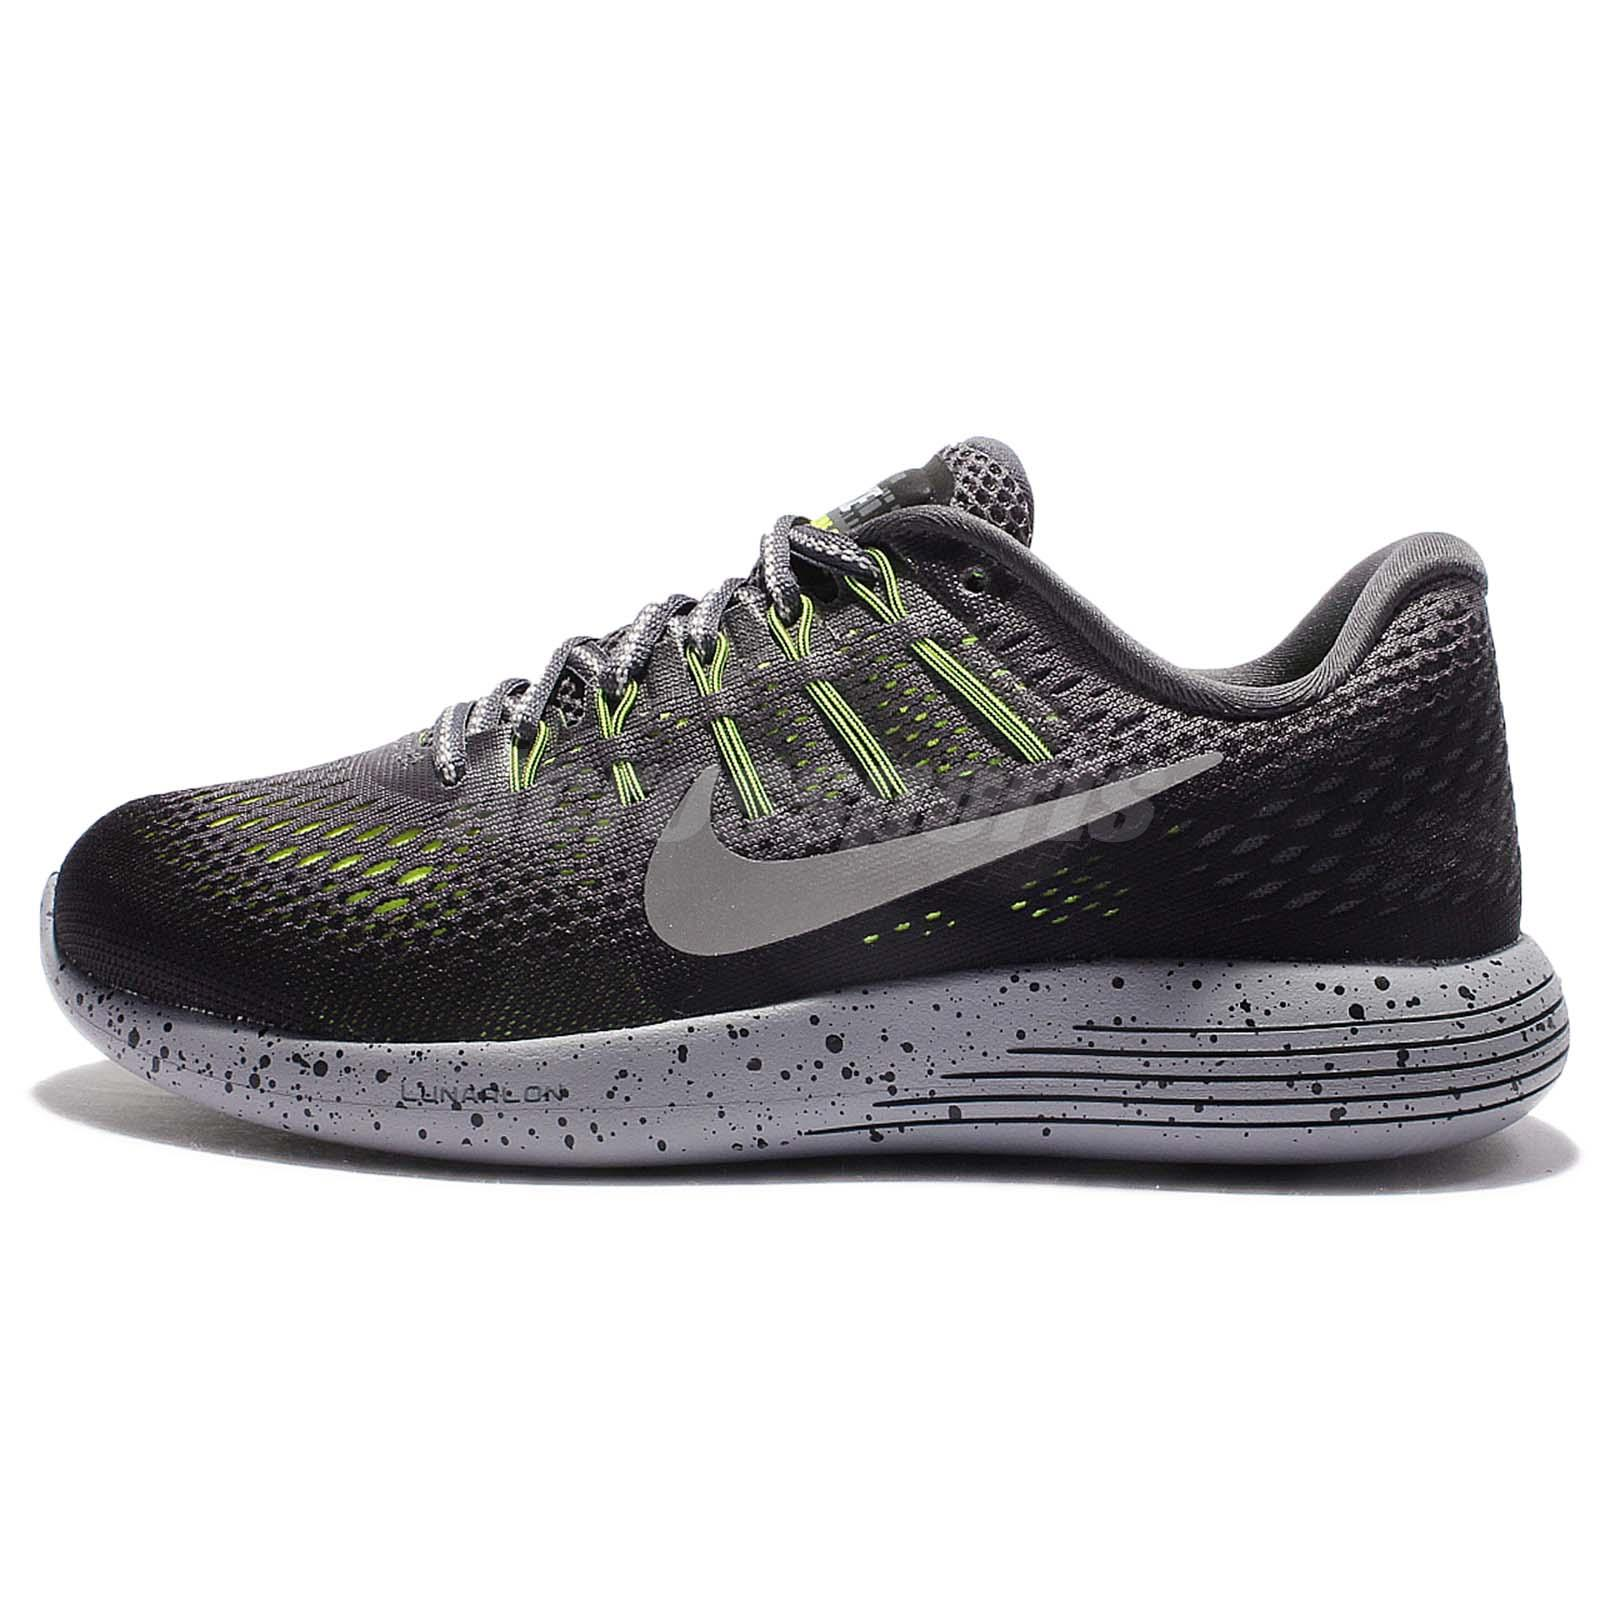 b259d0219bfbe9 ... spain wmns nike lunarglide 8 shield water repellent grey women running  849569 007 c306a cf51a ...